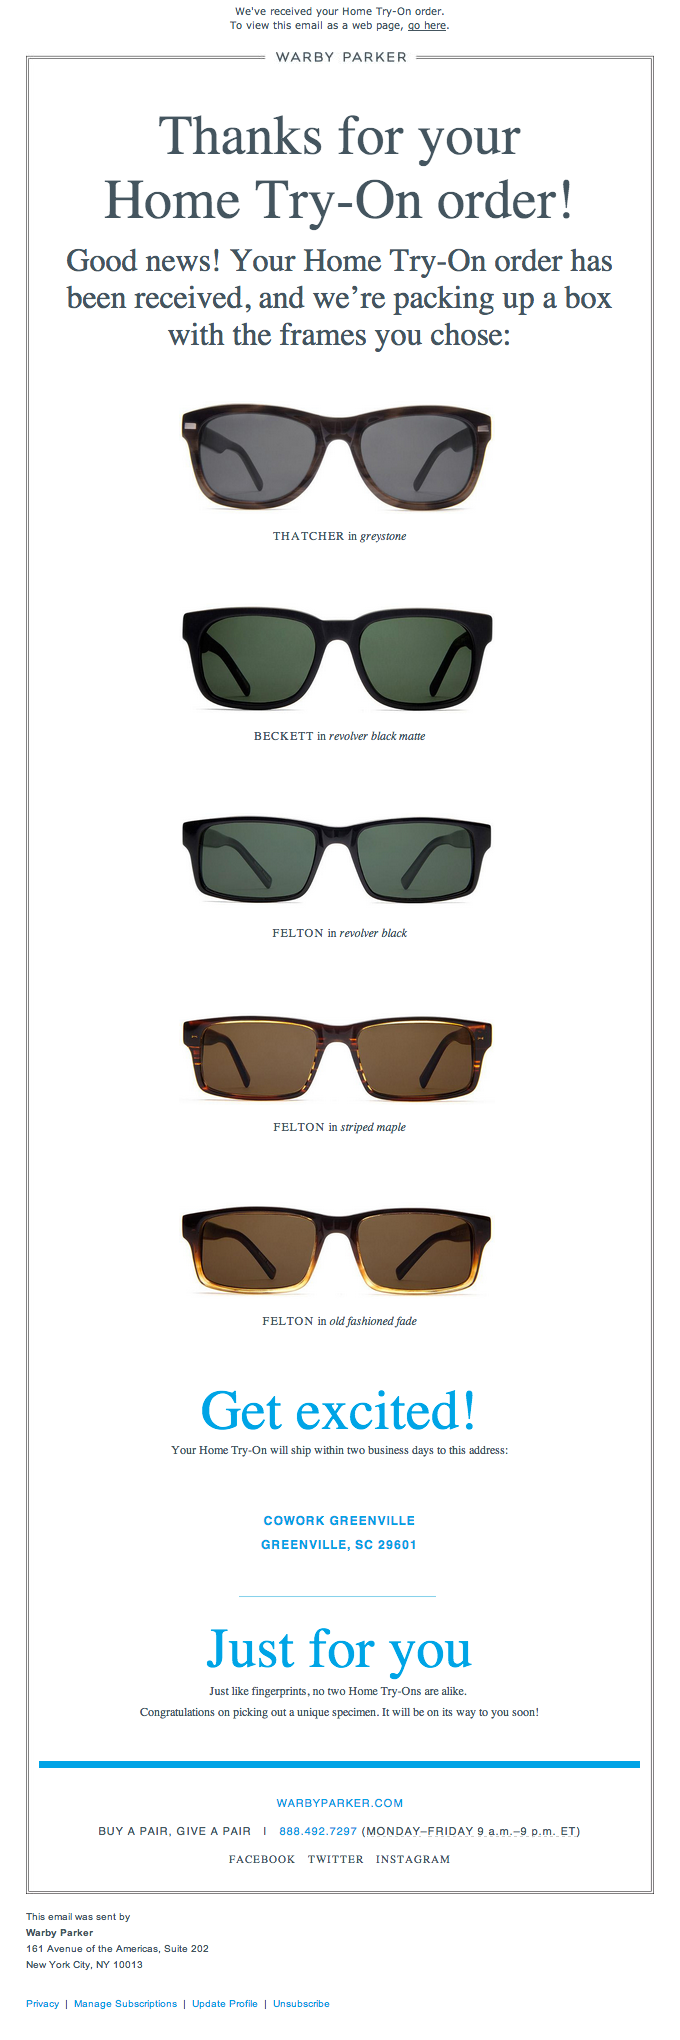 Thank you for your Order Email Design from Warby Parker